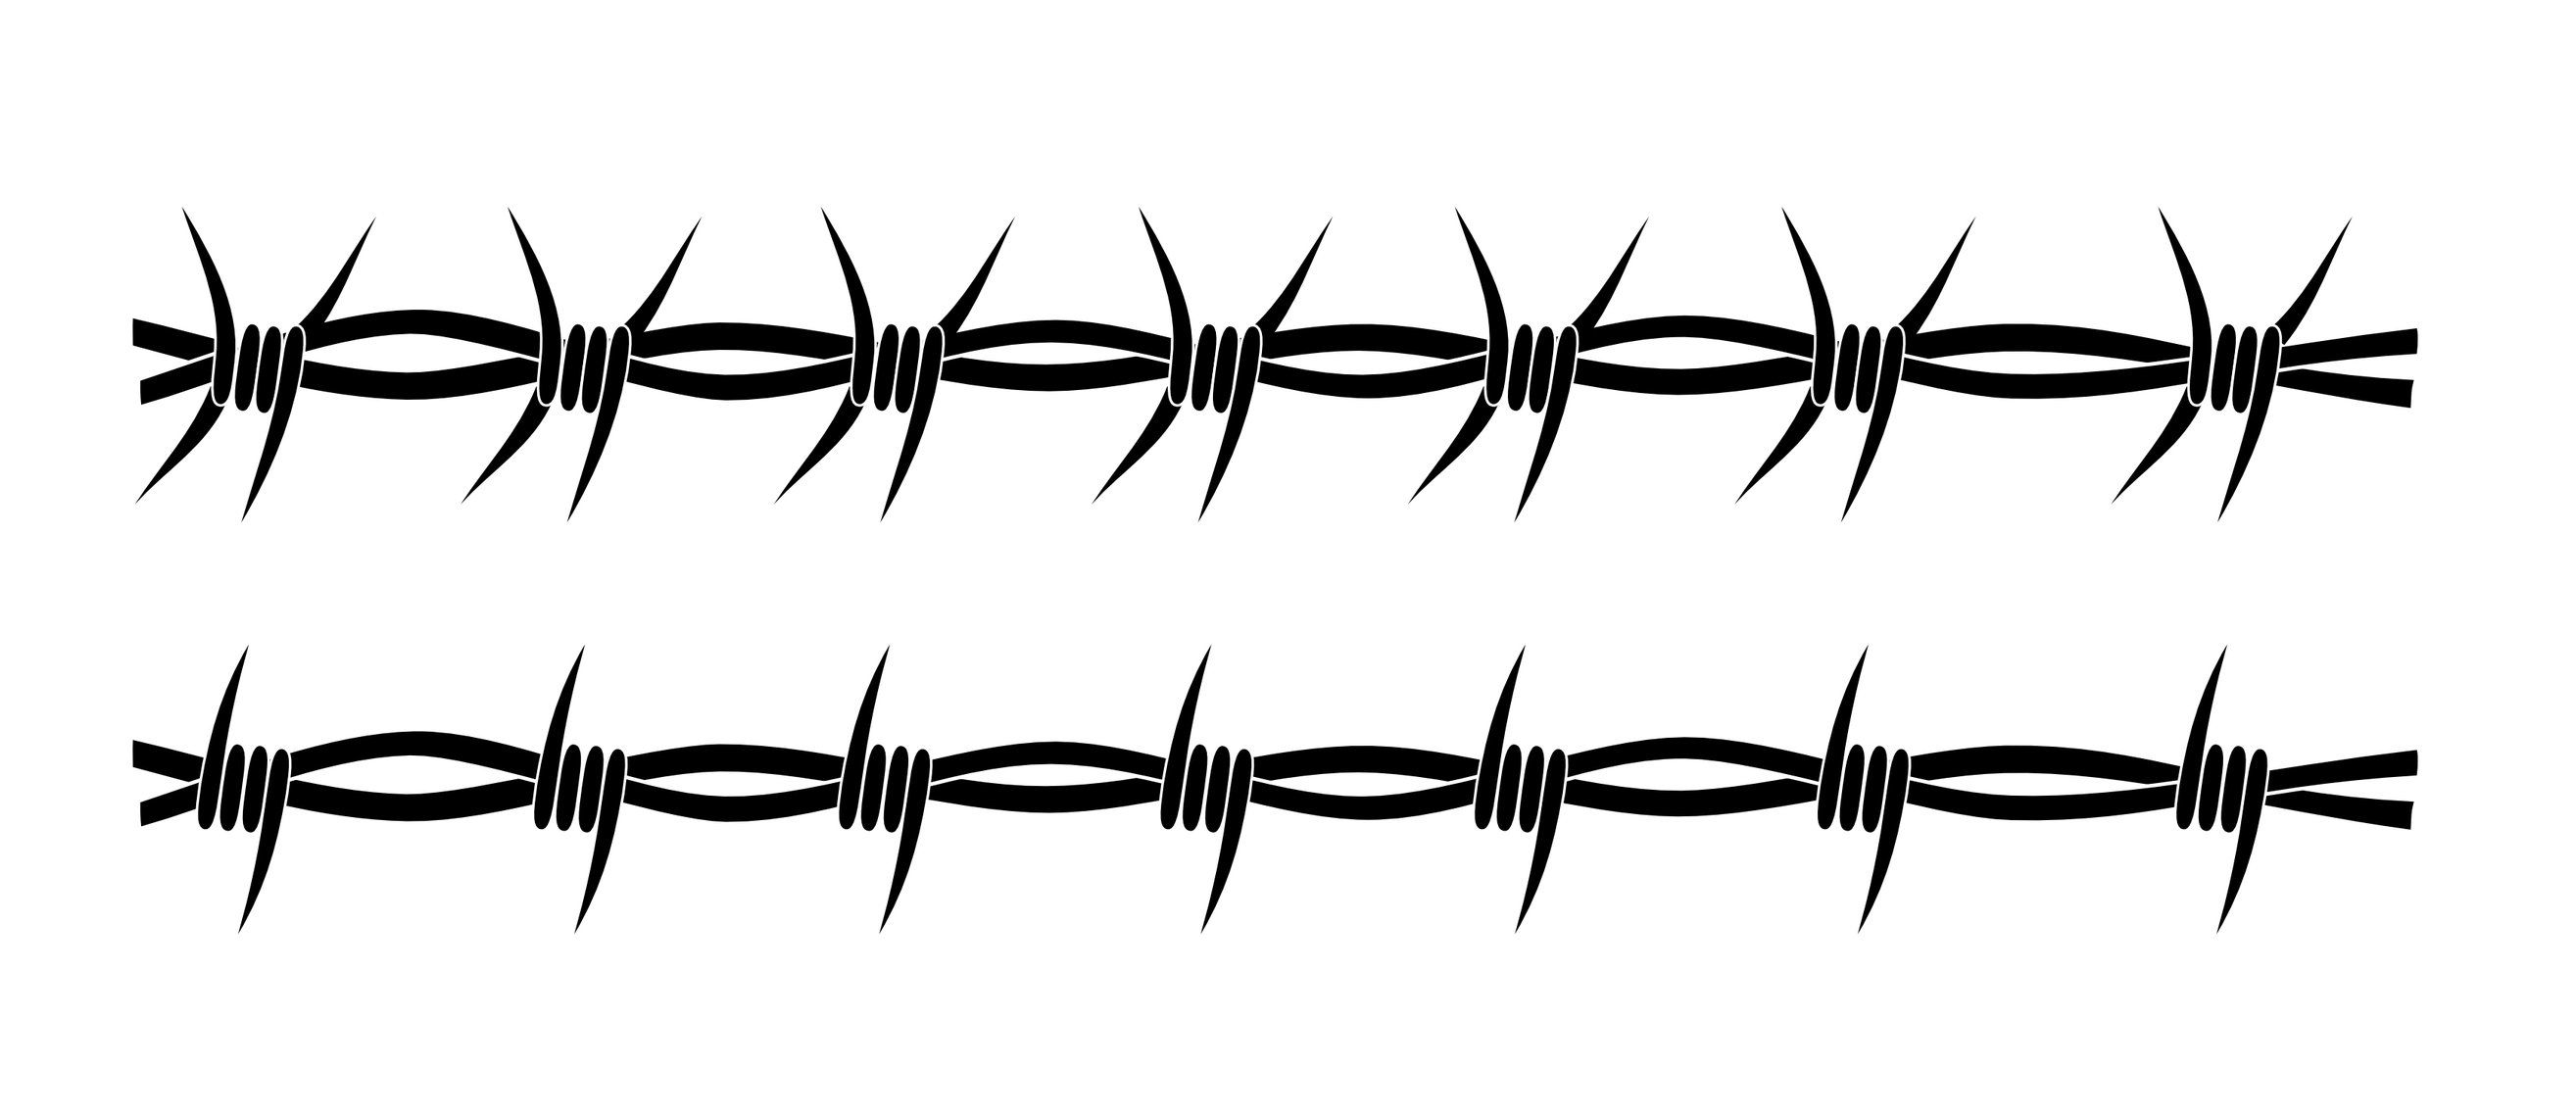 image freeuse download Barbed images gallery for. Barb wire clipart go ahead